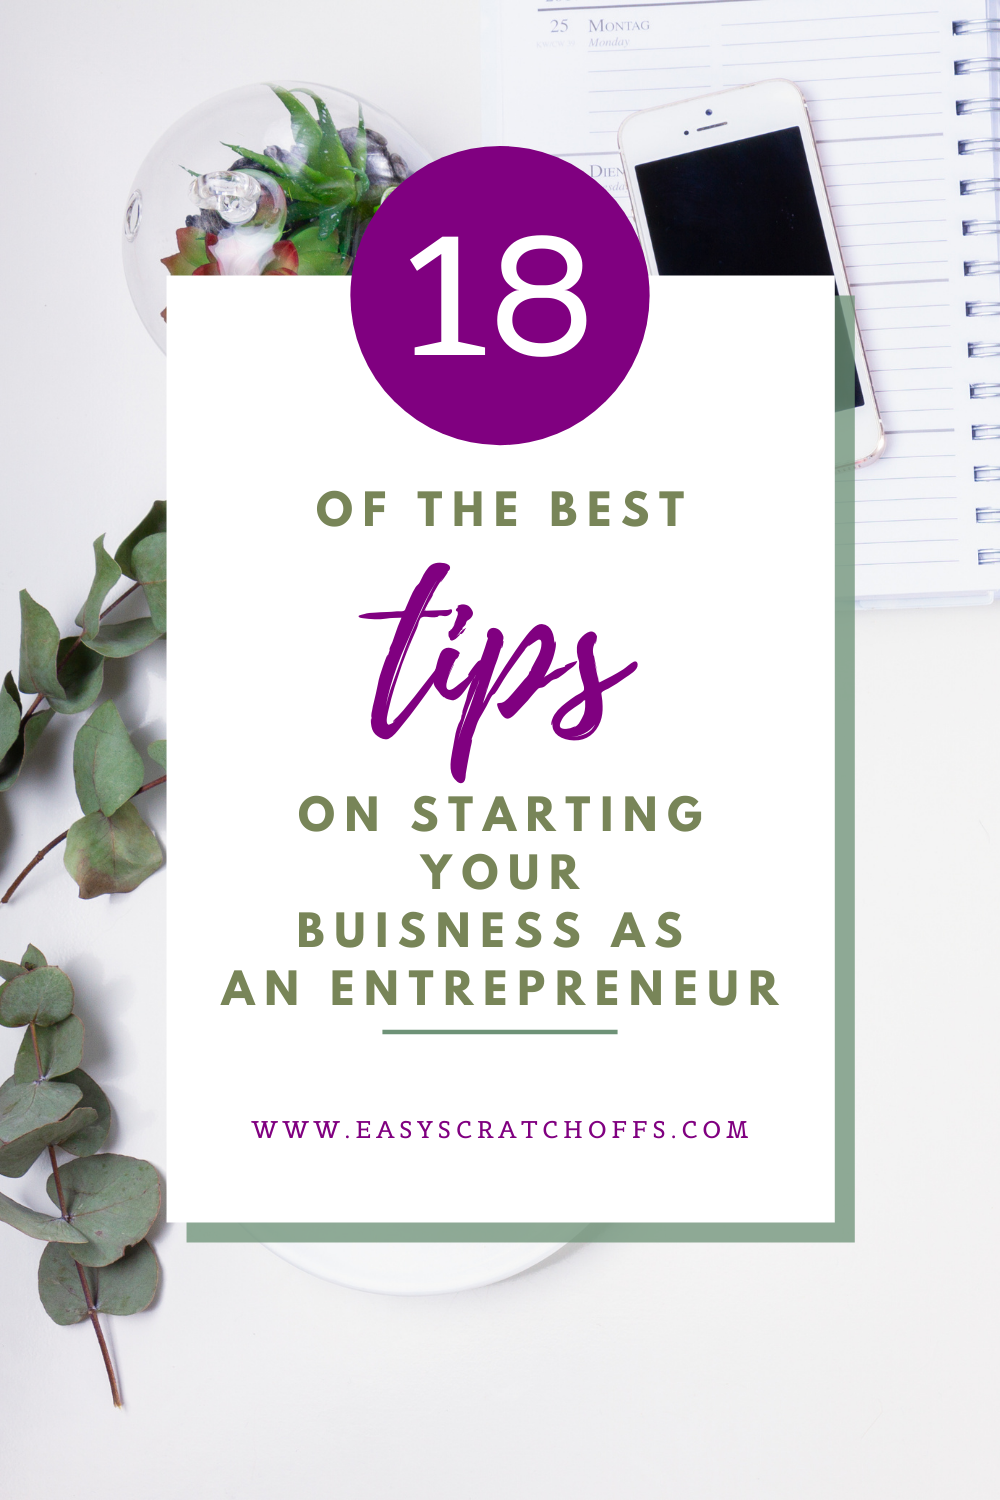 Tips to starting a business